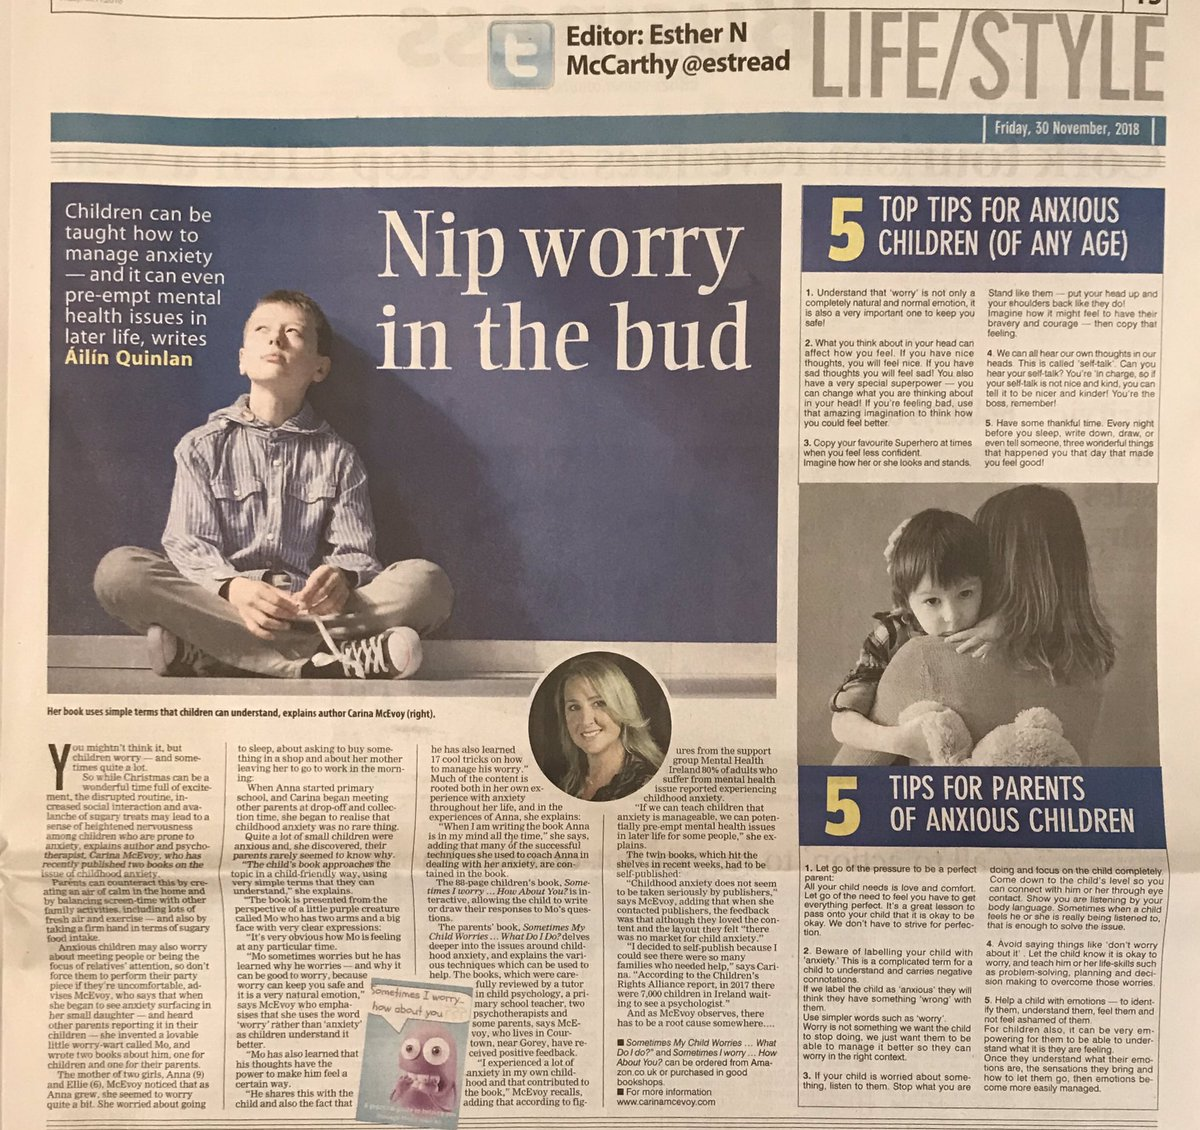 405dc6593f06 Thrilled to be featured in today s  irishexaminer along with my 5 top tips  for anxious kids   also 5 top tips for parents of anxious kids.